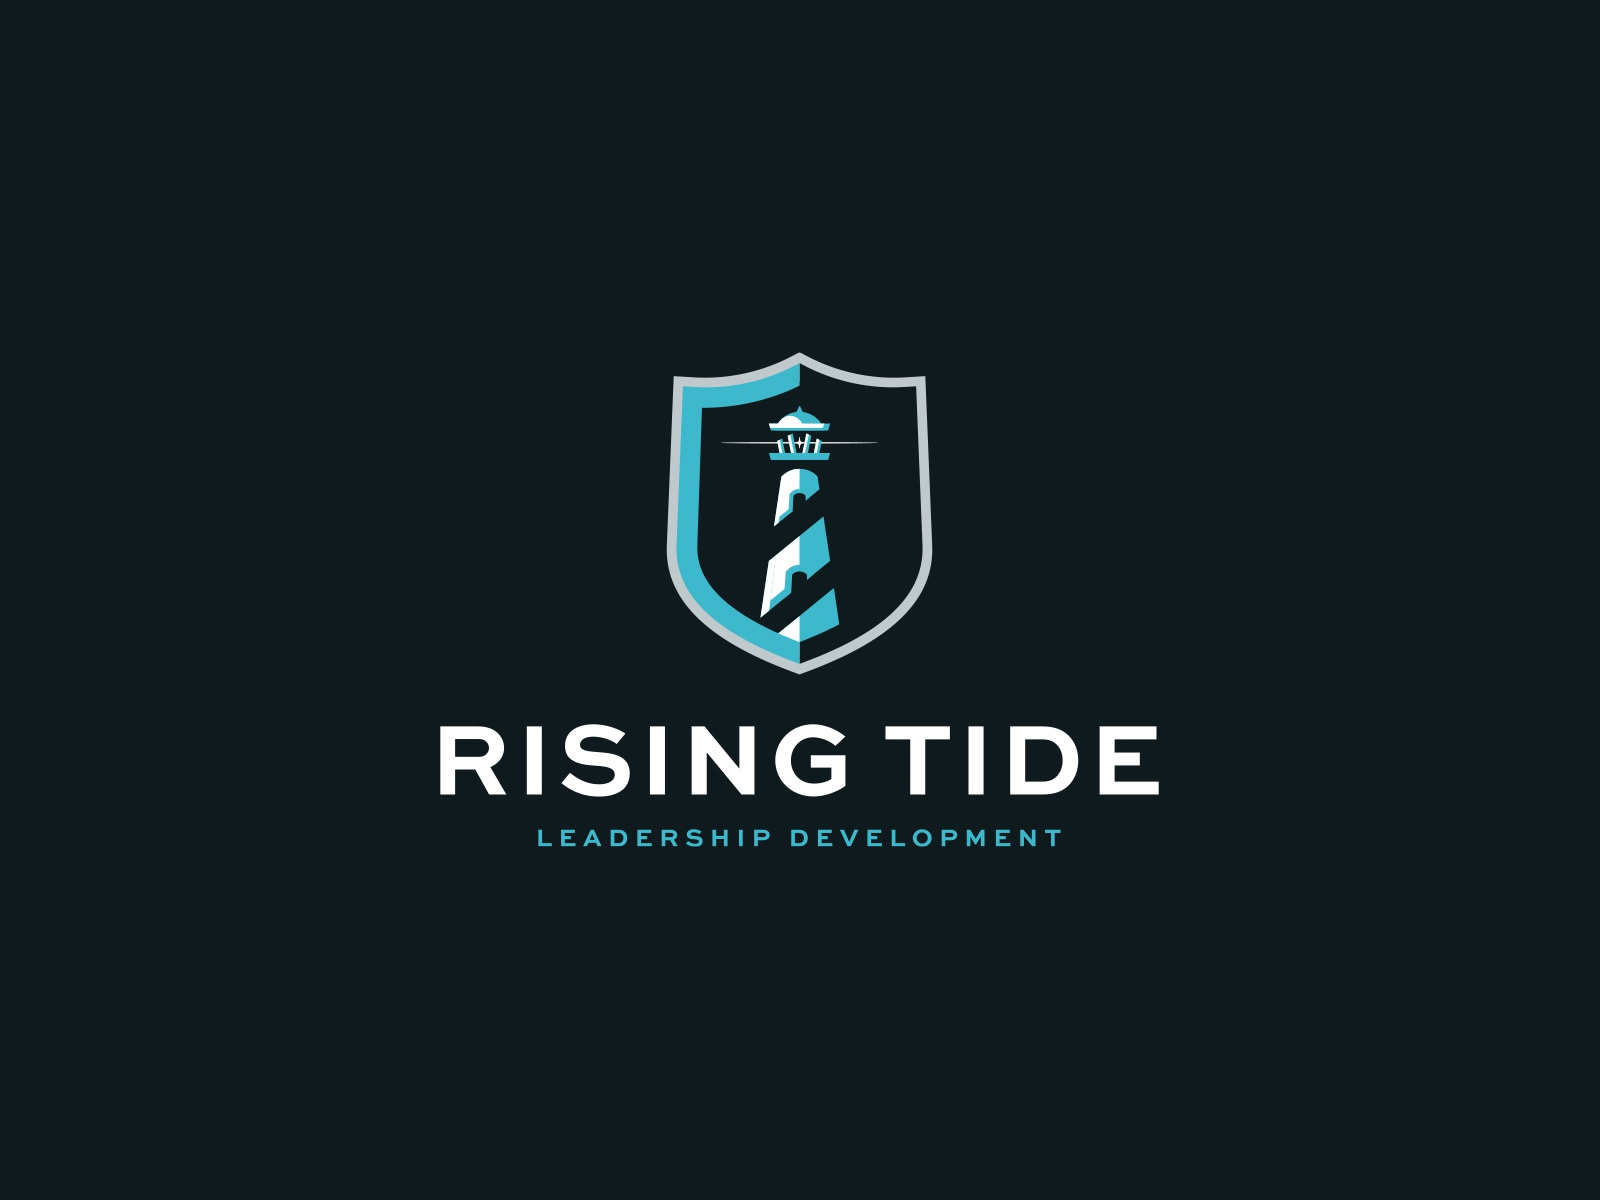 Rising Tide Leadership Development | Brand Identity